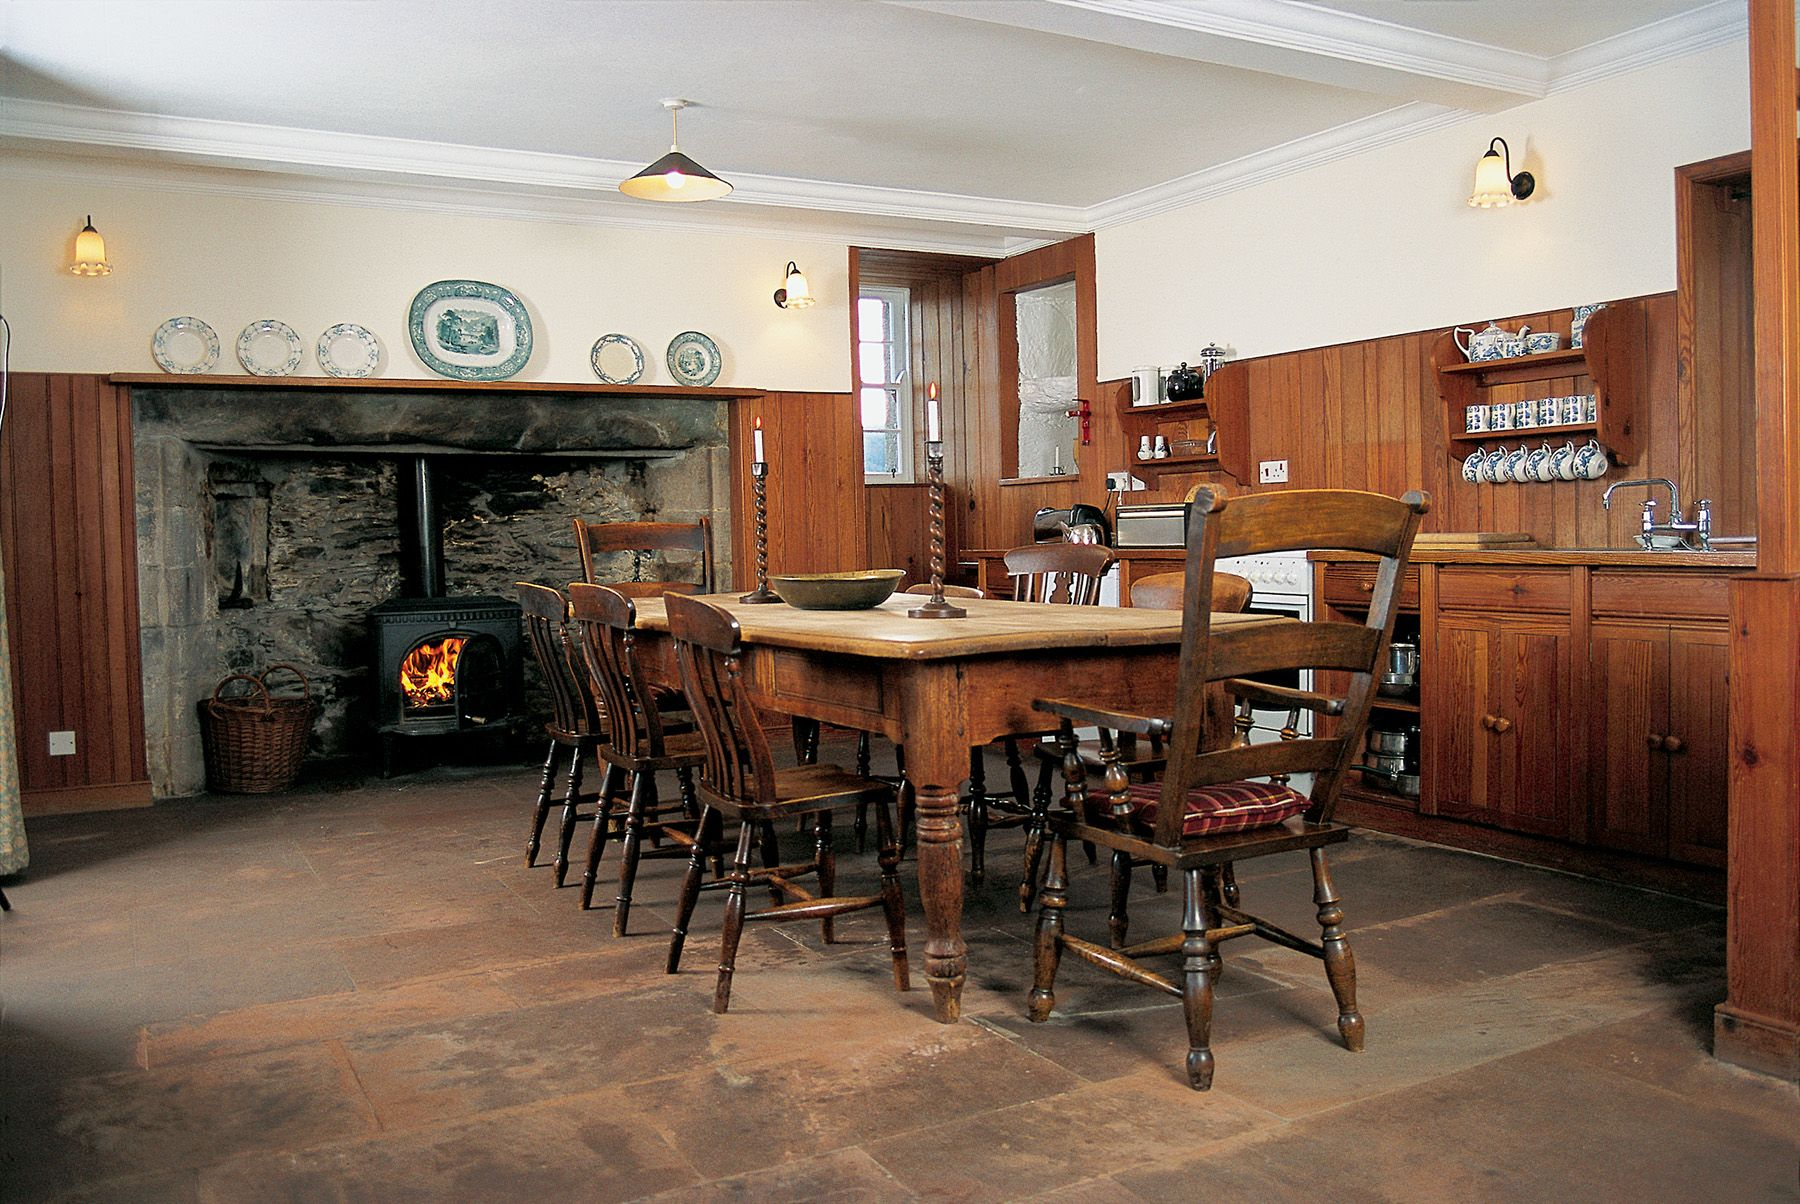 The Old Place of Monreith, #Scotland, with it\u0027s cosy kitchen ...